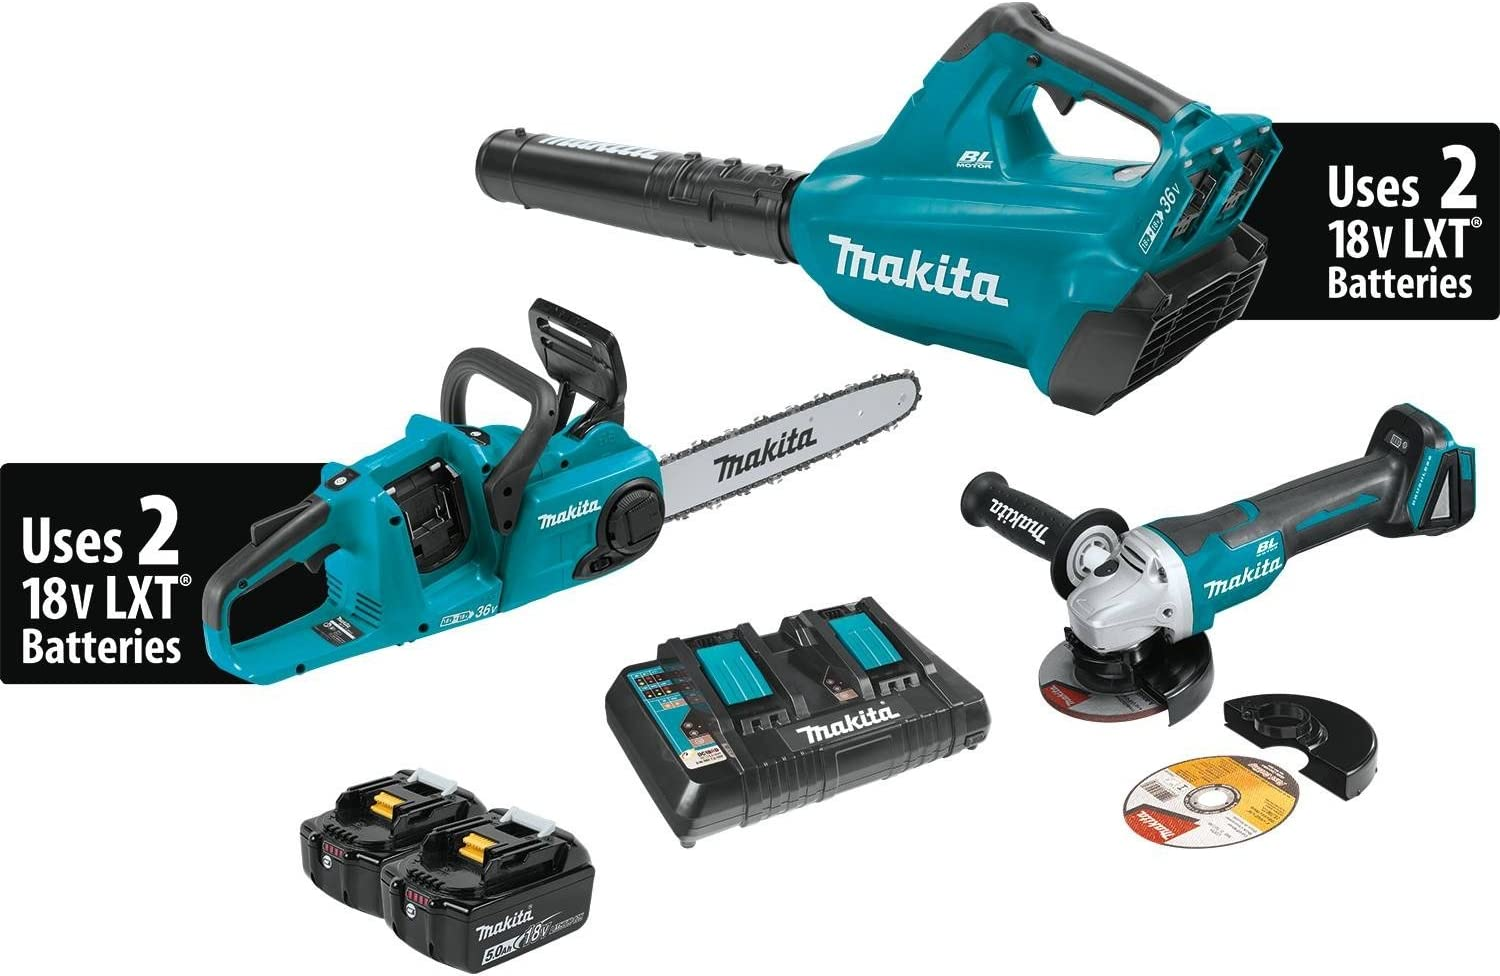 Makita XT276PTX 18V X2 36V LXT Lithium-Ion Brushless Cordless 2-Pc. Combo Kit 5.0Ah and Brushless Angle Grinder